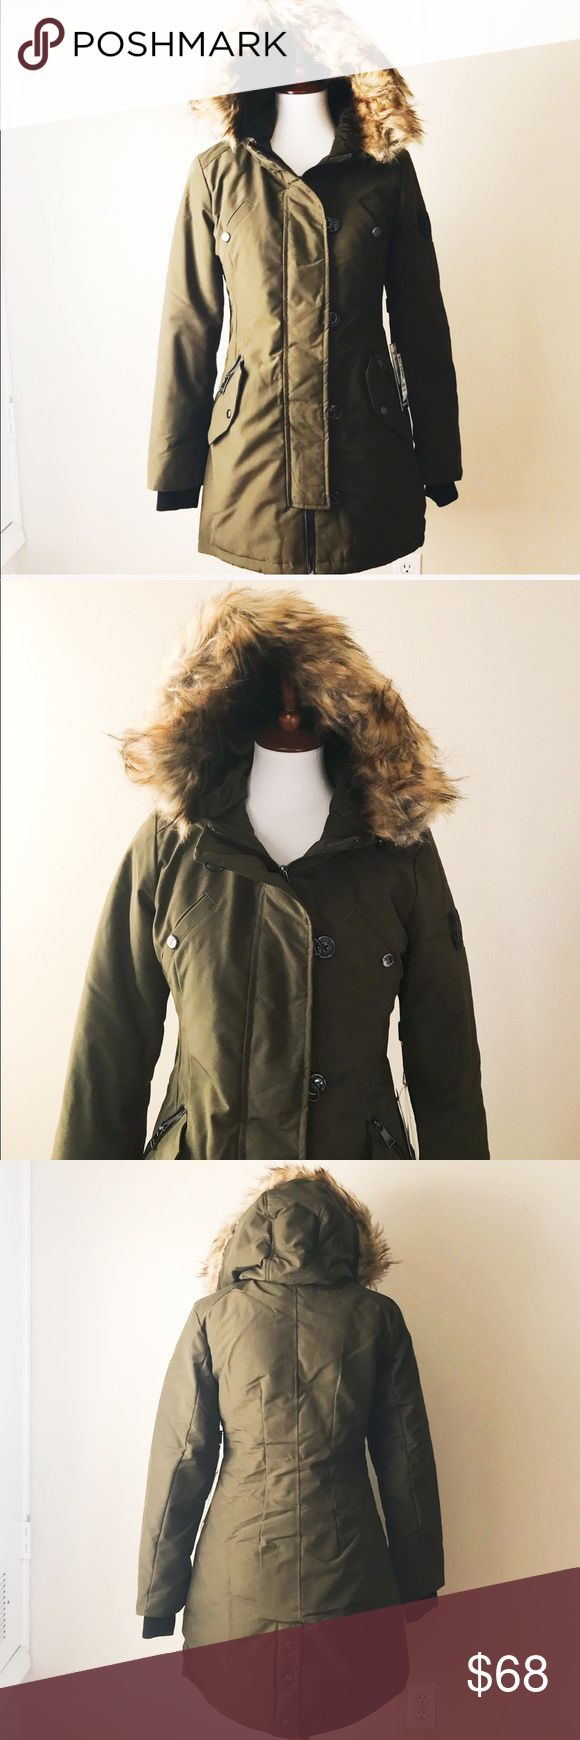 """Bebe warm puffer jacket New with tag. 100% polyester filling 100% polyester. In army green color. Has plenty of pockets. Length approximately 34"""". Price is firm. No trades  bebe Jackets & Coats Trench Coats"""